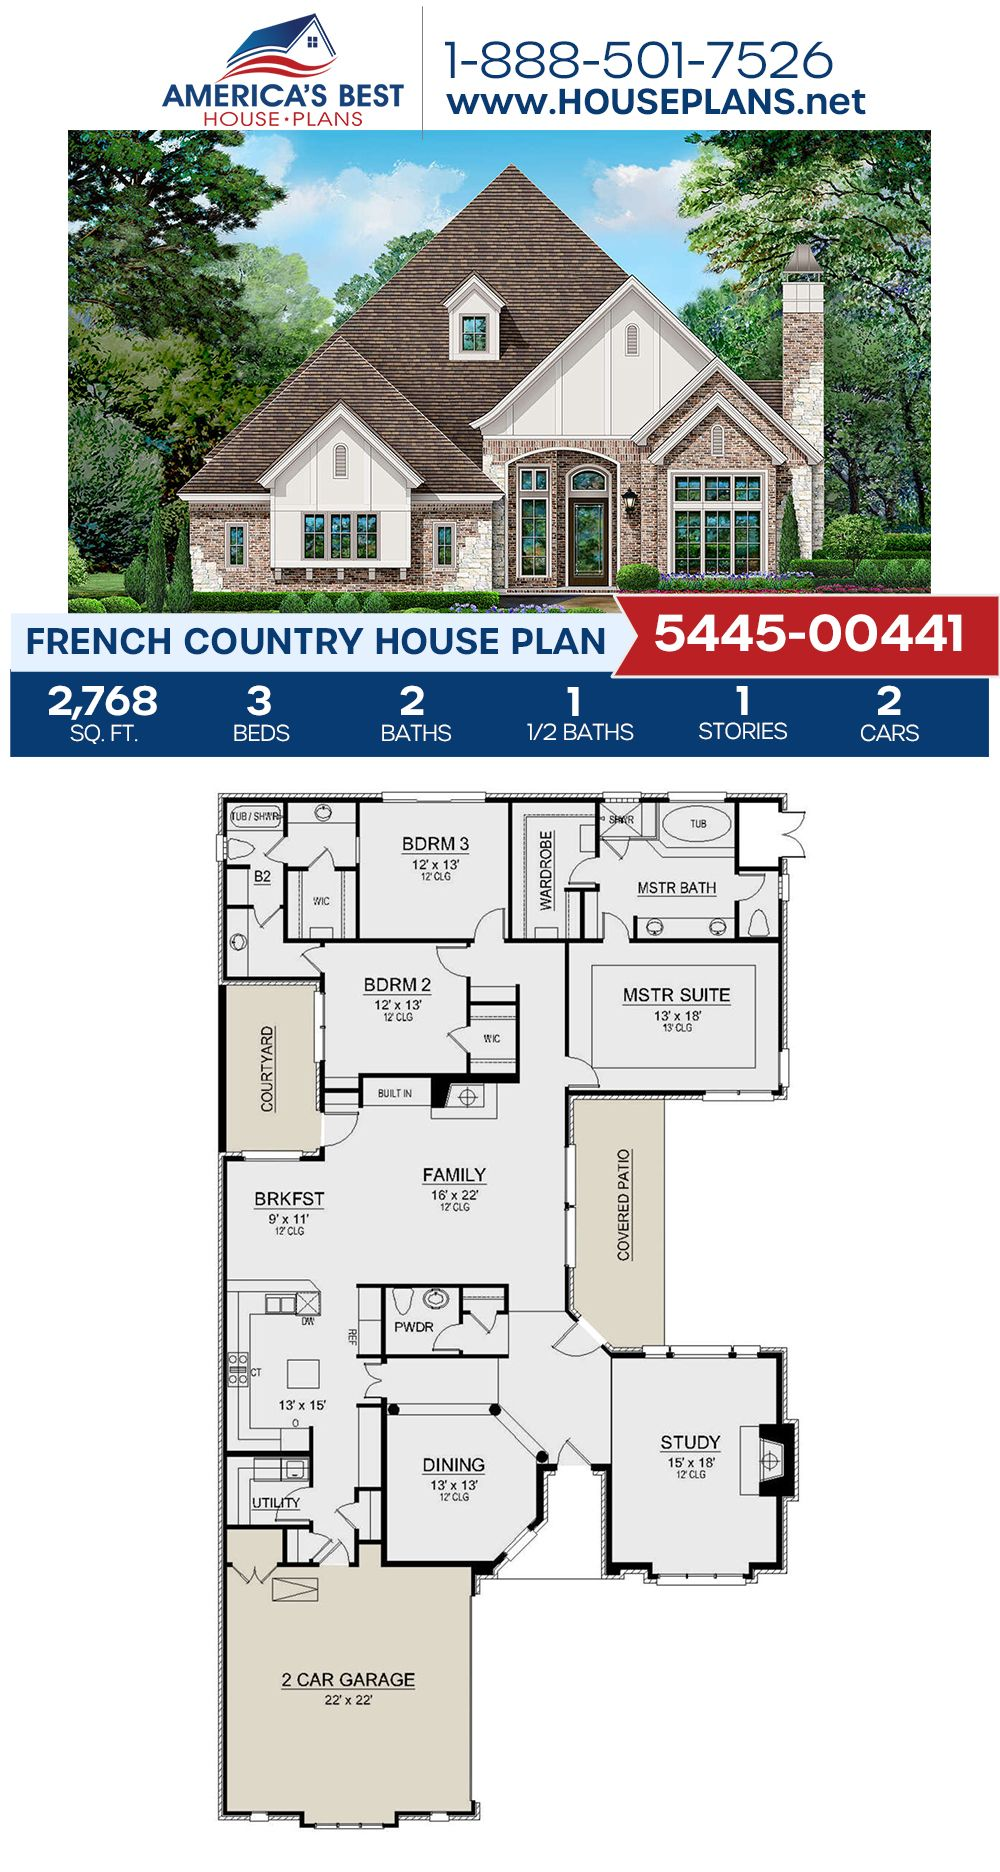 House Plan 5445 00441 French Country Plan 2 768 Square Feet 3 Bedrooms 2 5 Bathrooms French Country House Plans French Country House House Plans